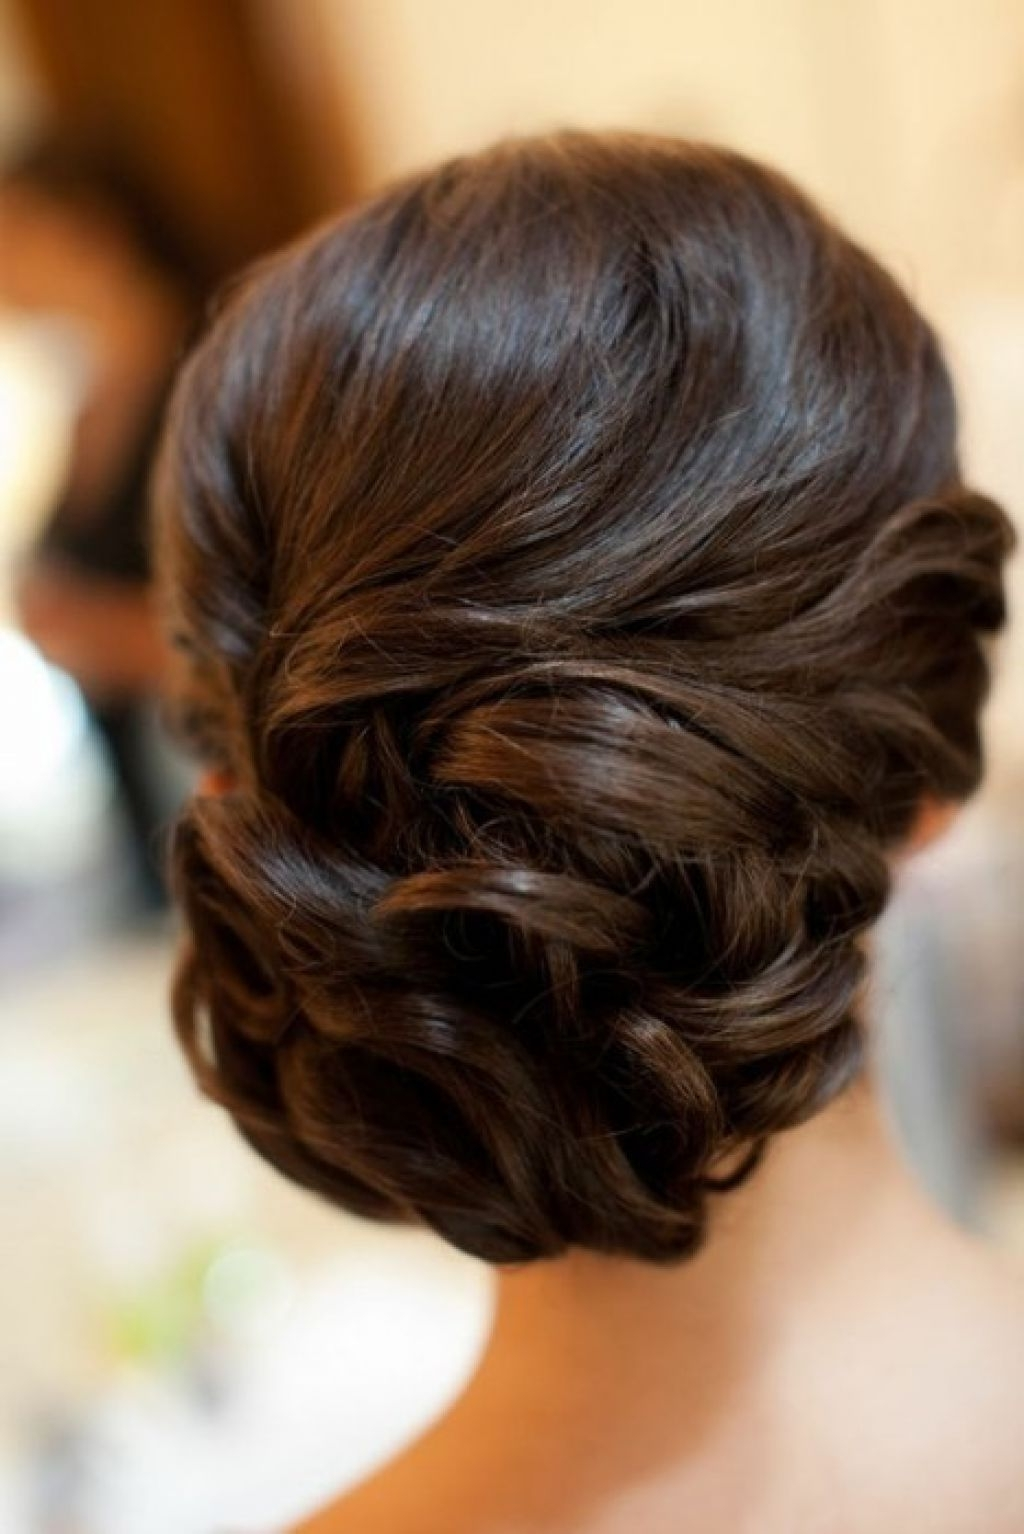 Easy Updo Hairstyles For Medium Hair Hairstyle Fodo Women Impressive Inside Long Hair Updo Hairstyles For Wedding (Gallery 10 of 15)